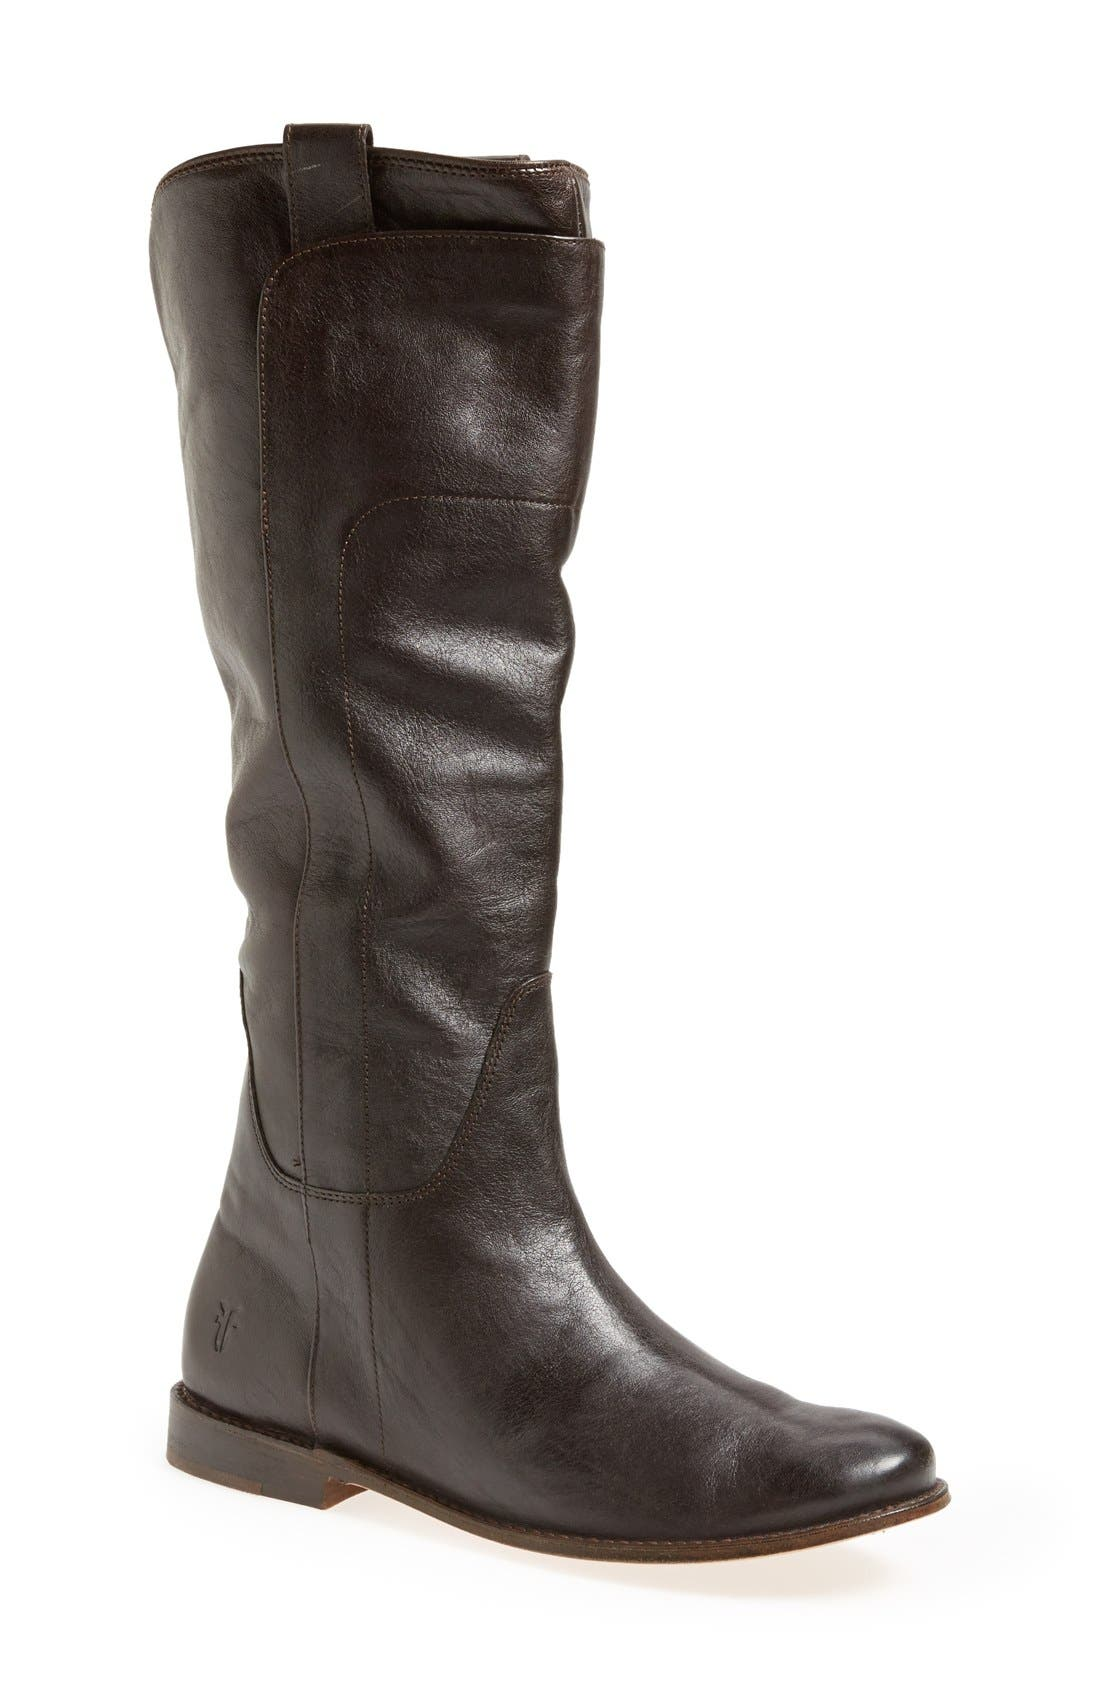 Main Image - Frye 'Paige' Tall Riding Boot